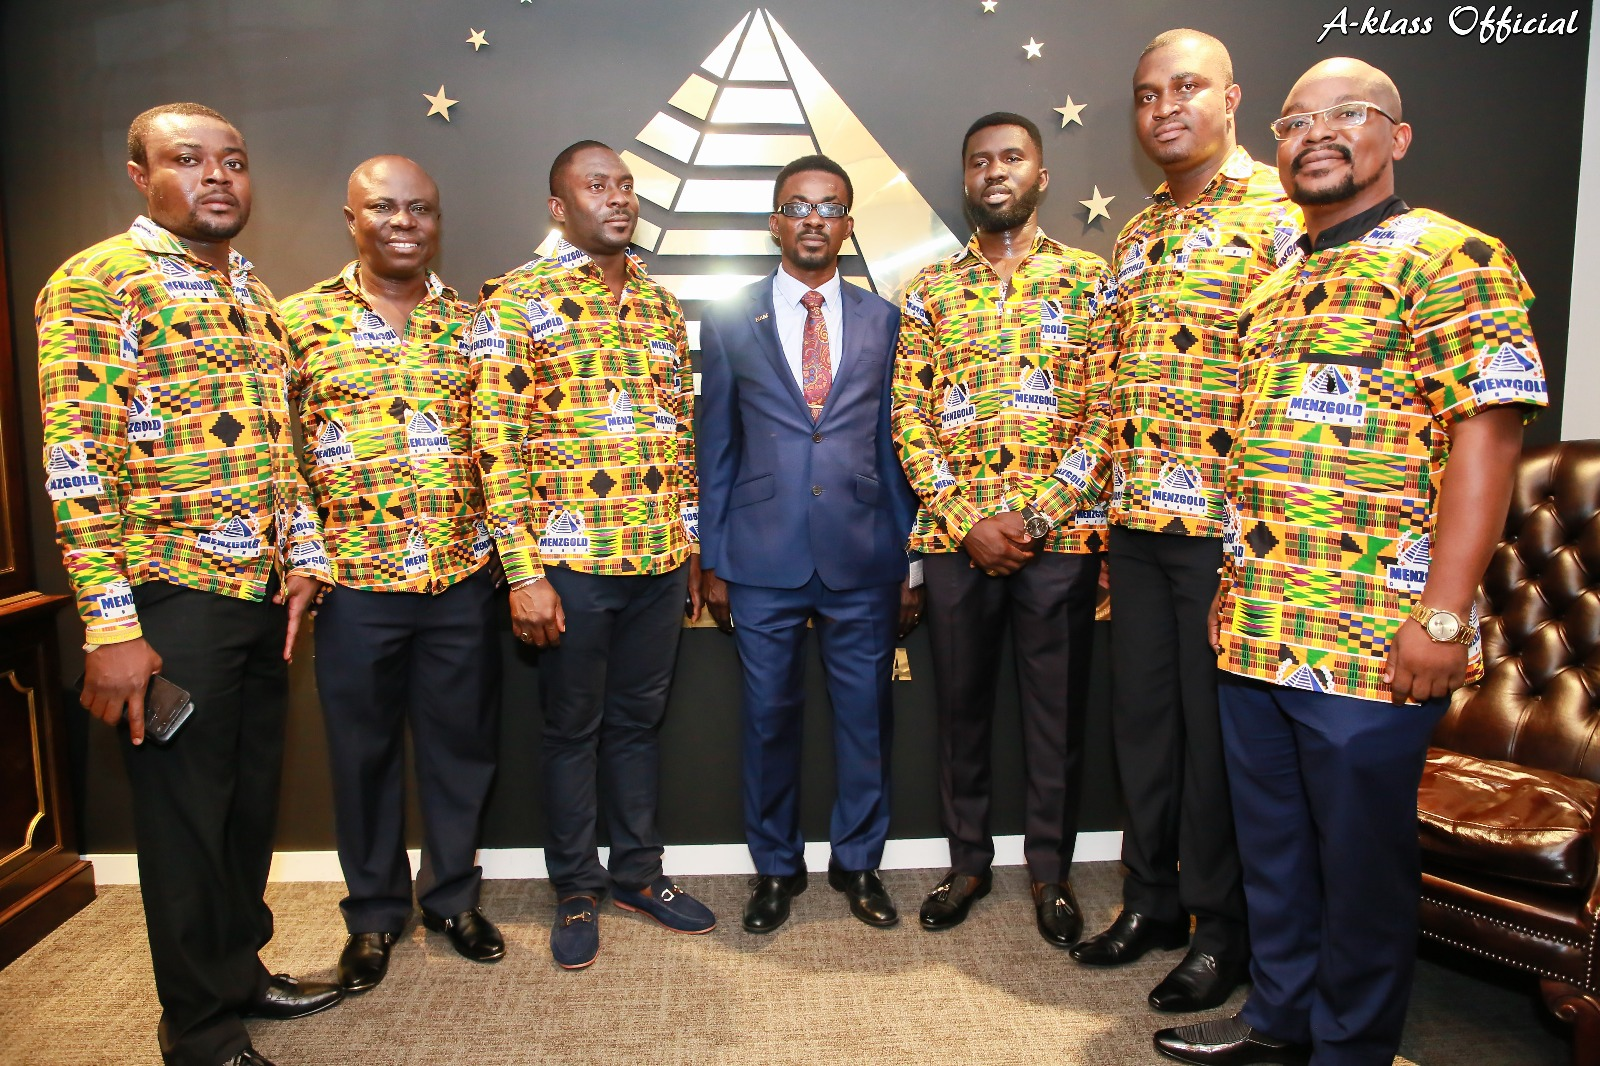 Menzgold directed to shut down operations